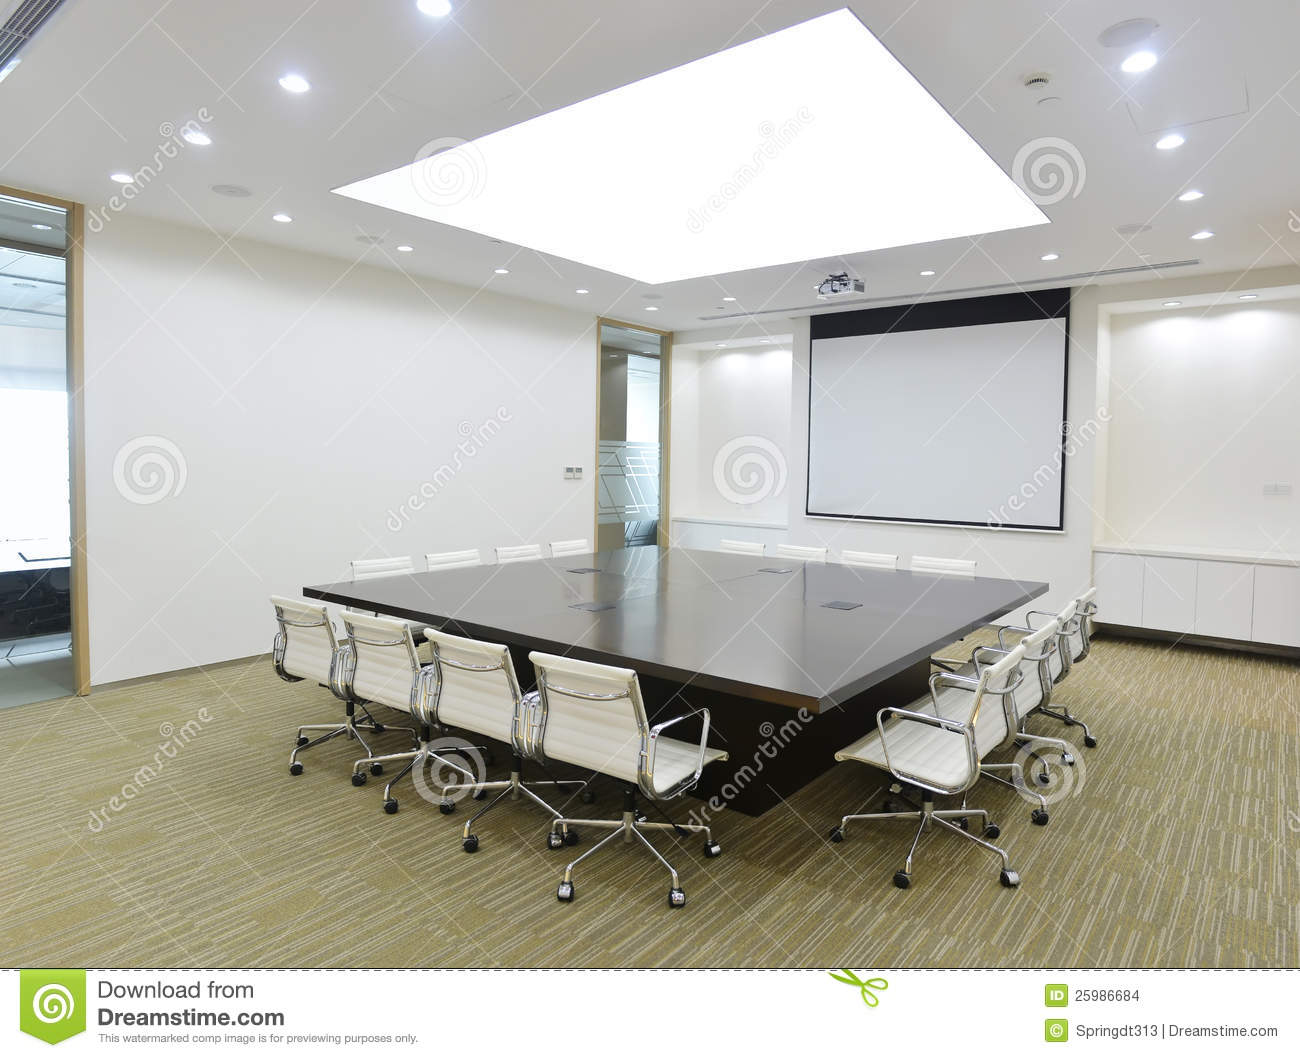 Asian Woman In Power In Conference Room